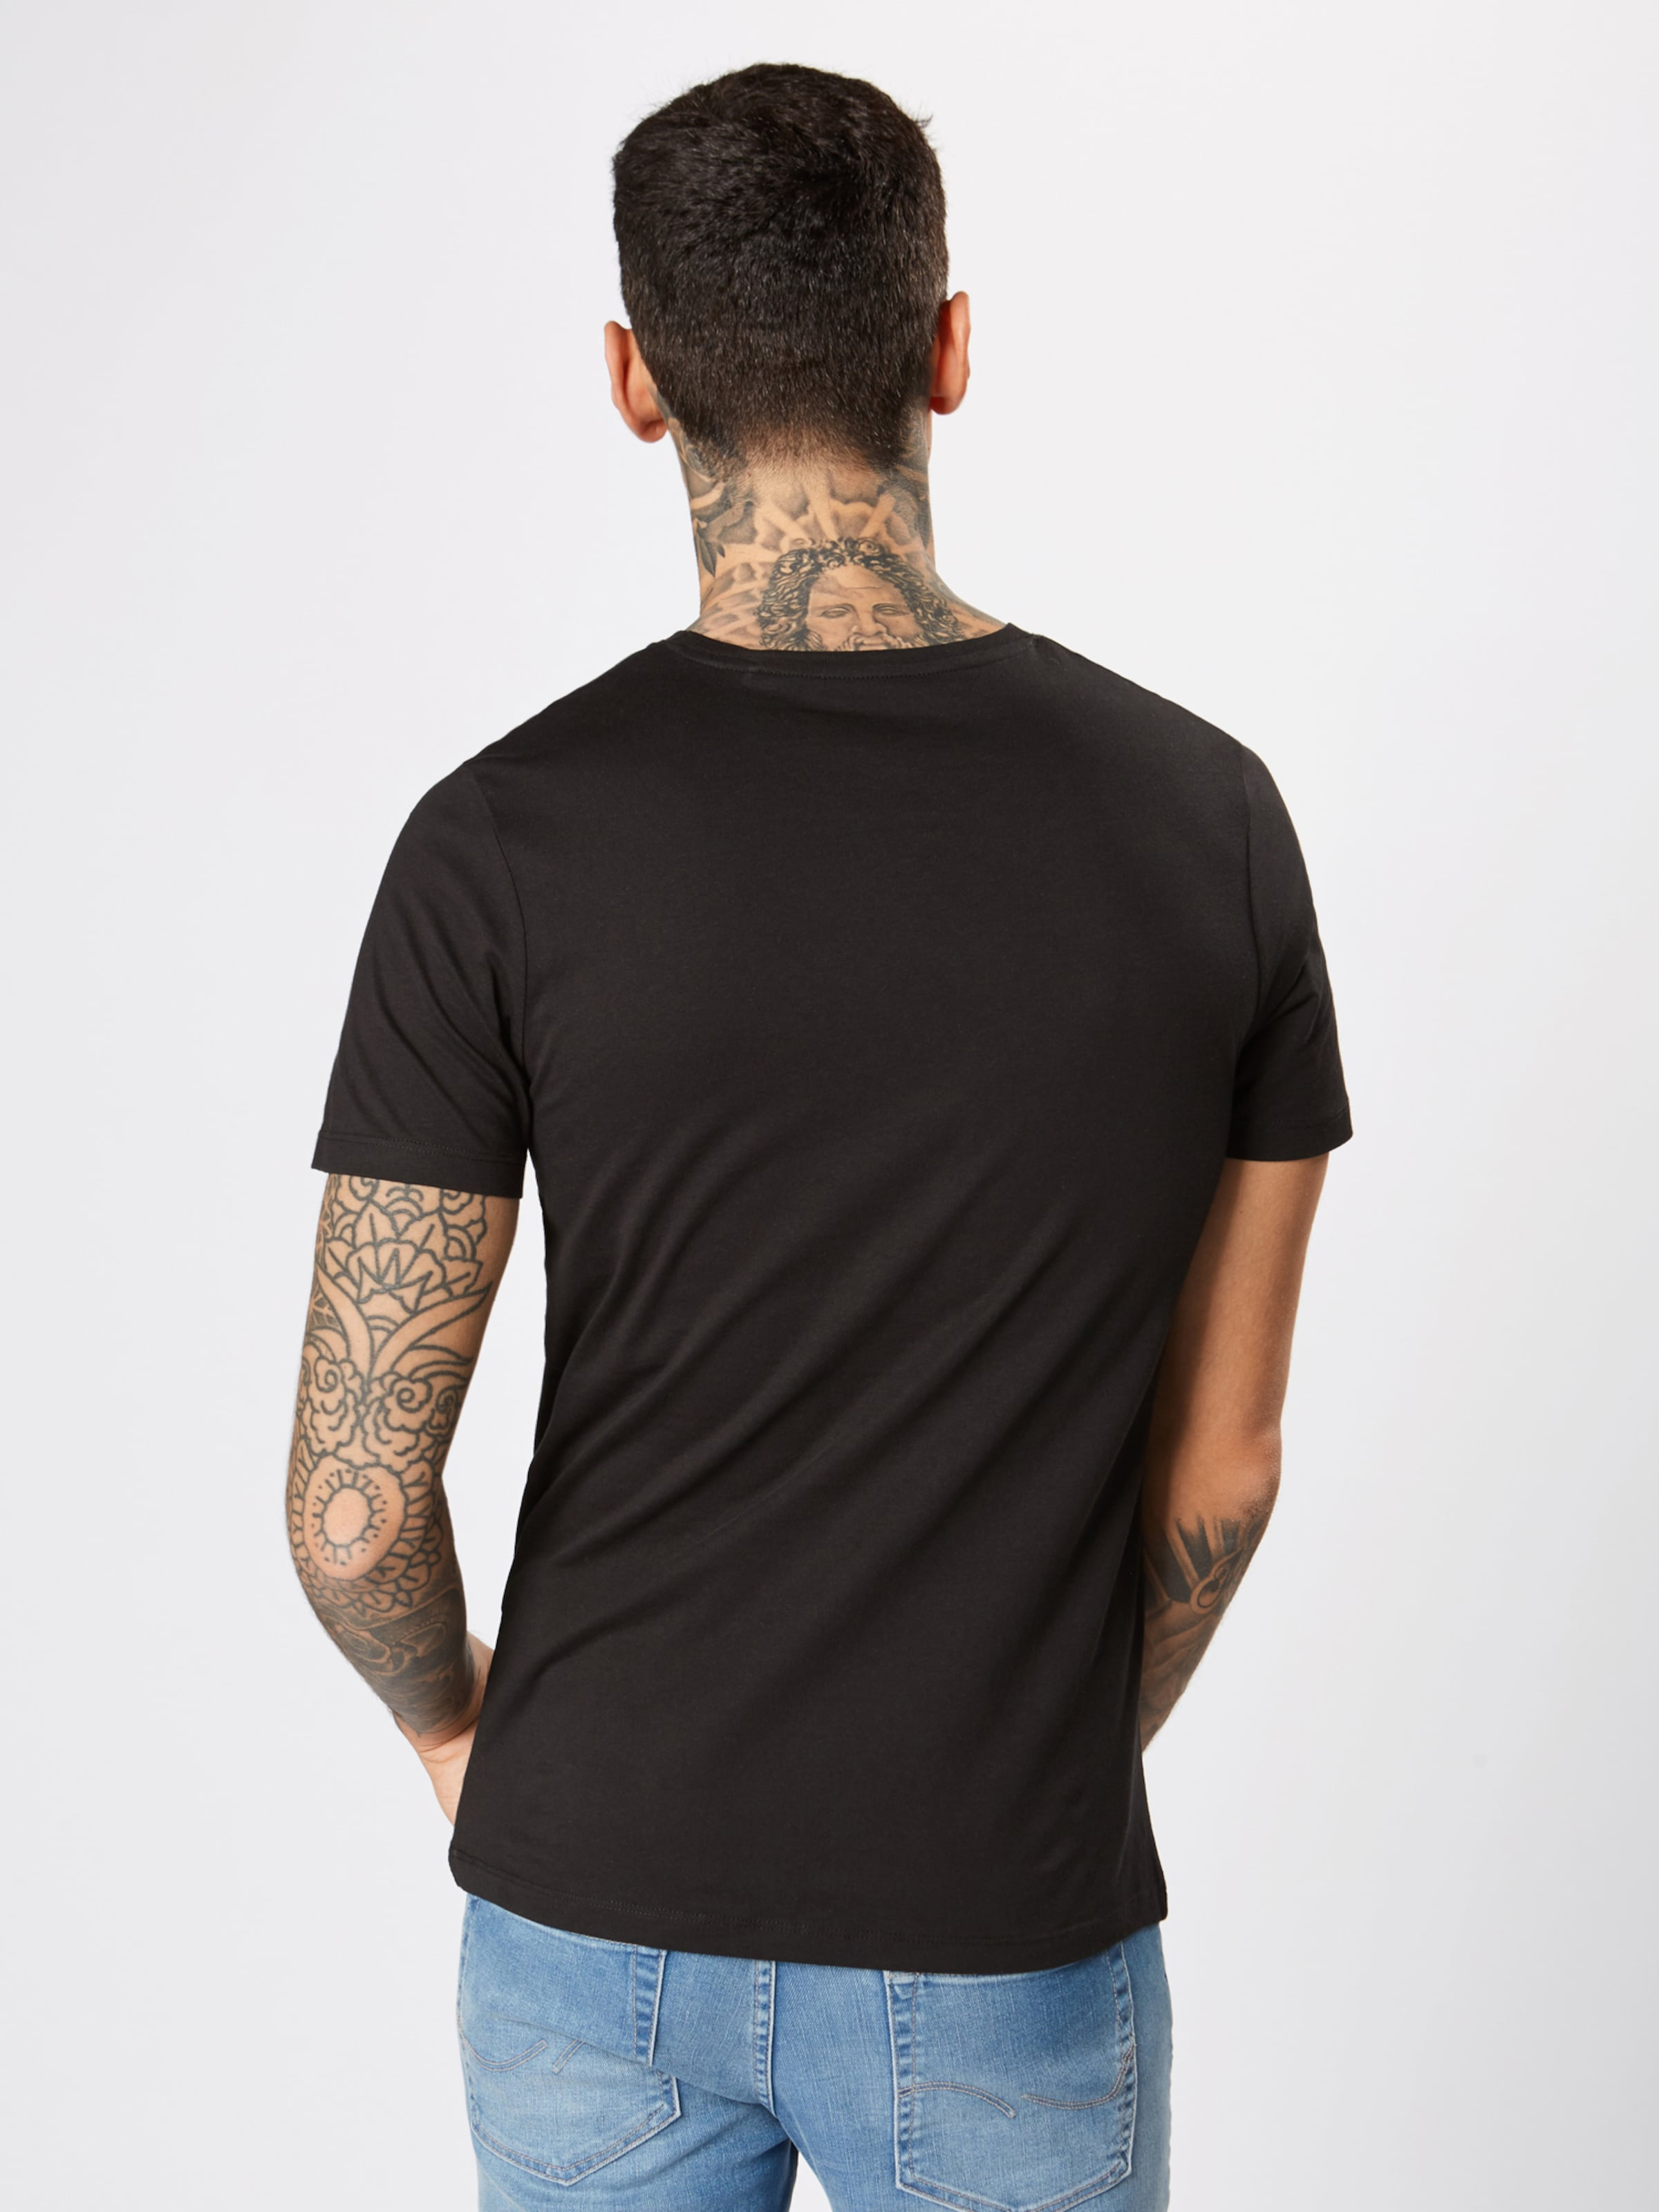 Jackamp; shirt Jones T En NoirBlanc Y76gbfy